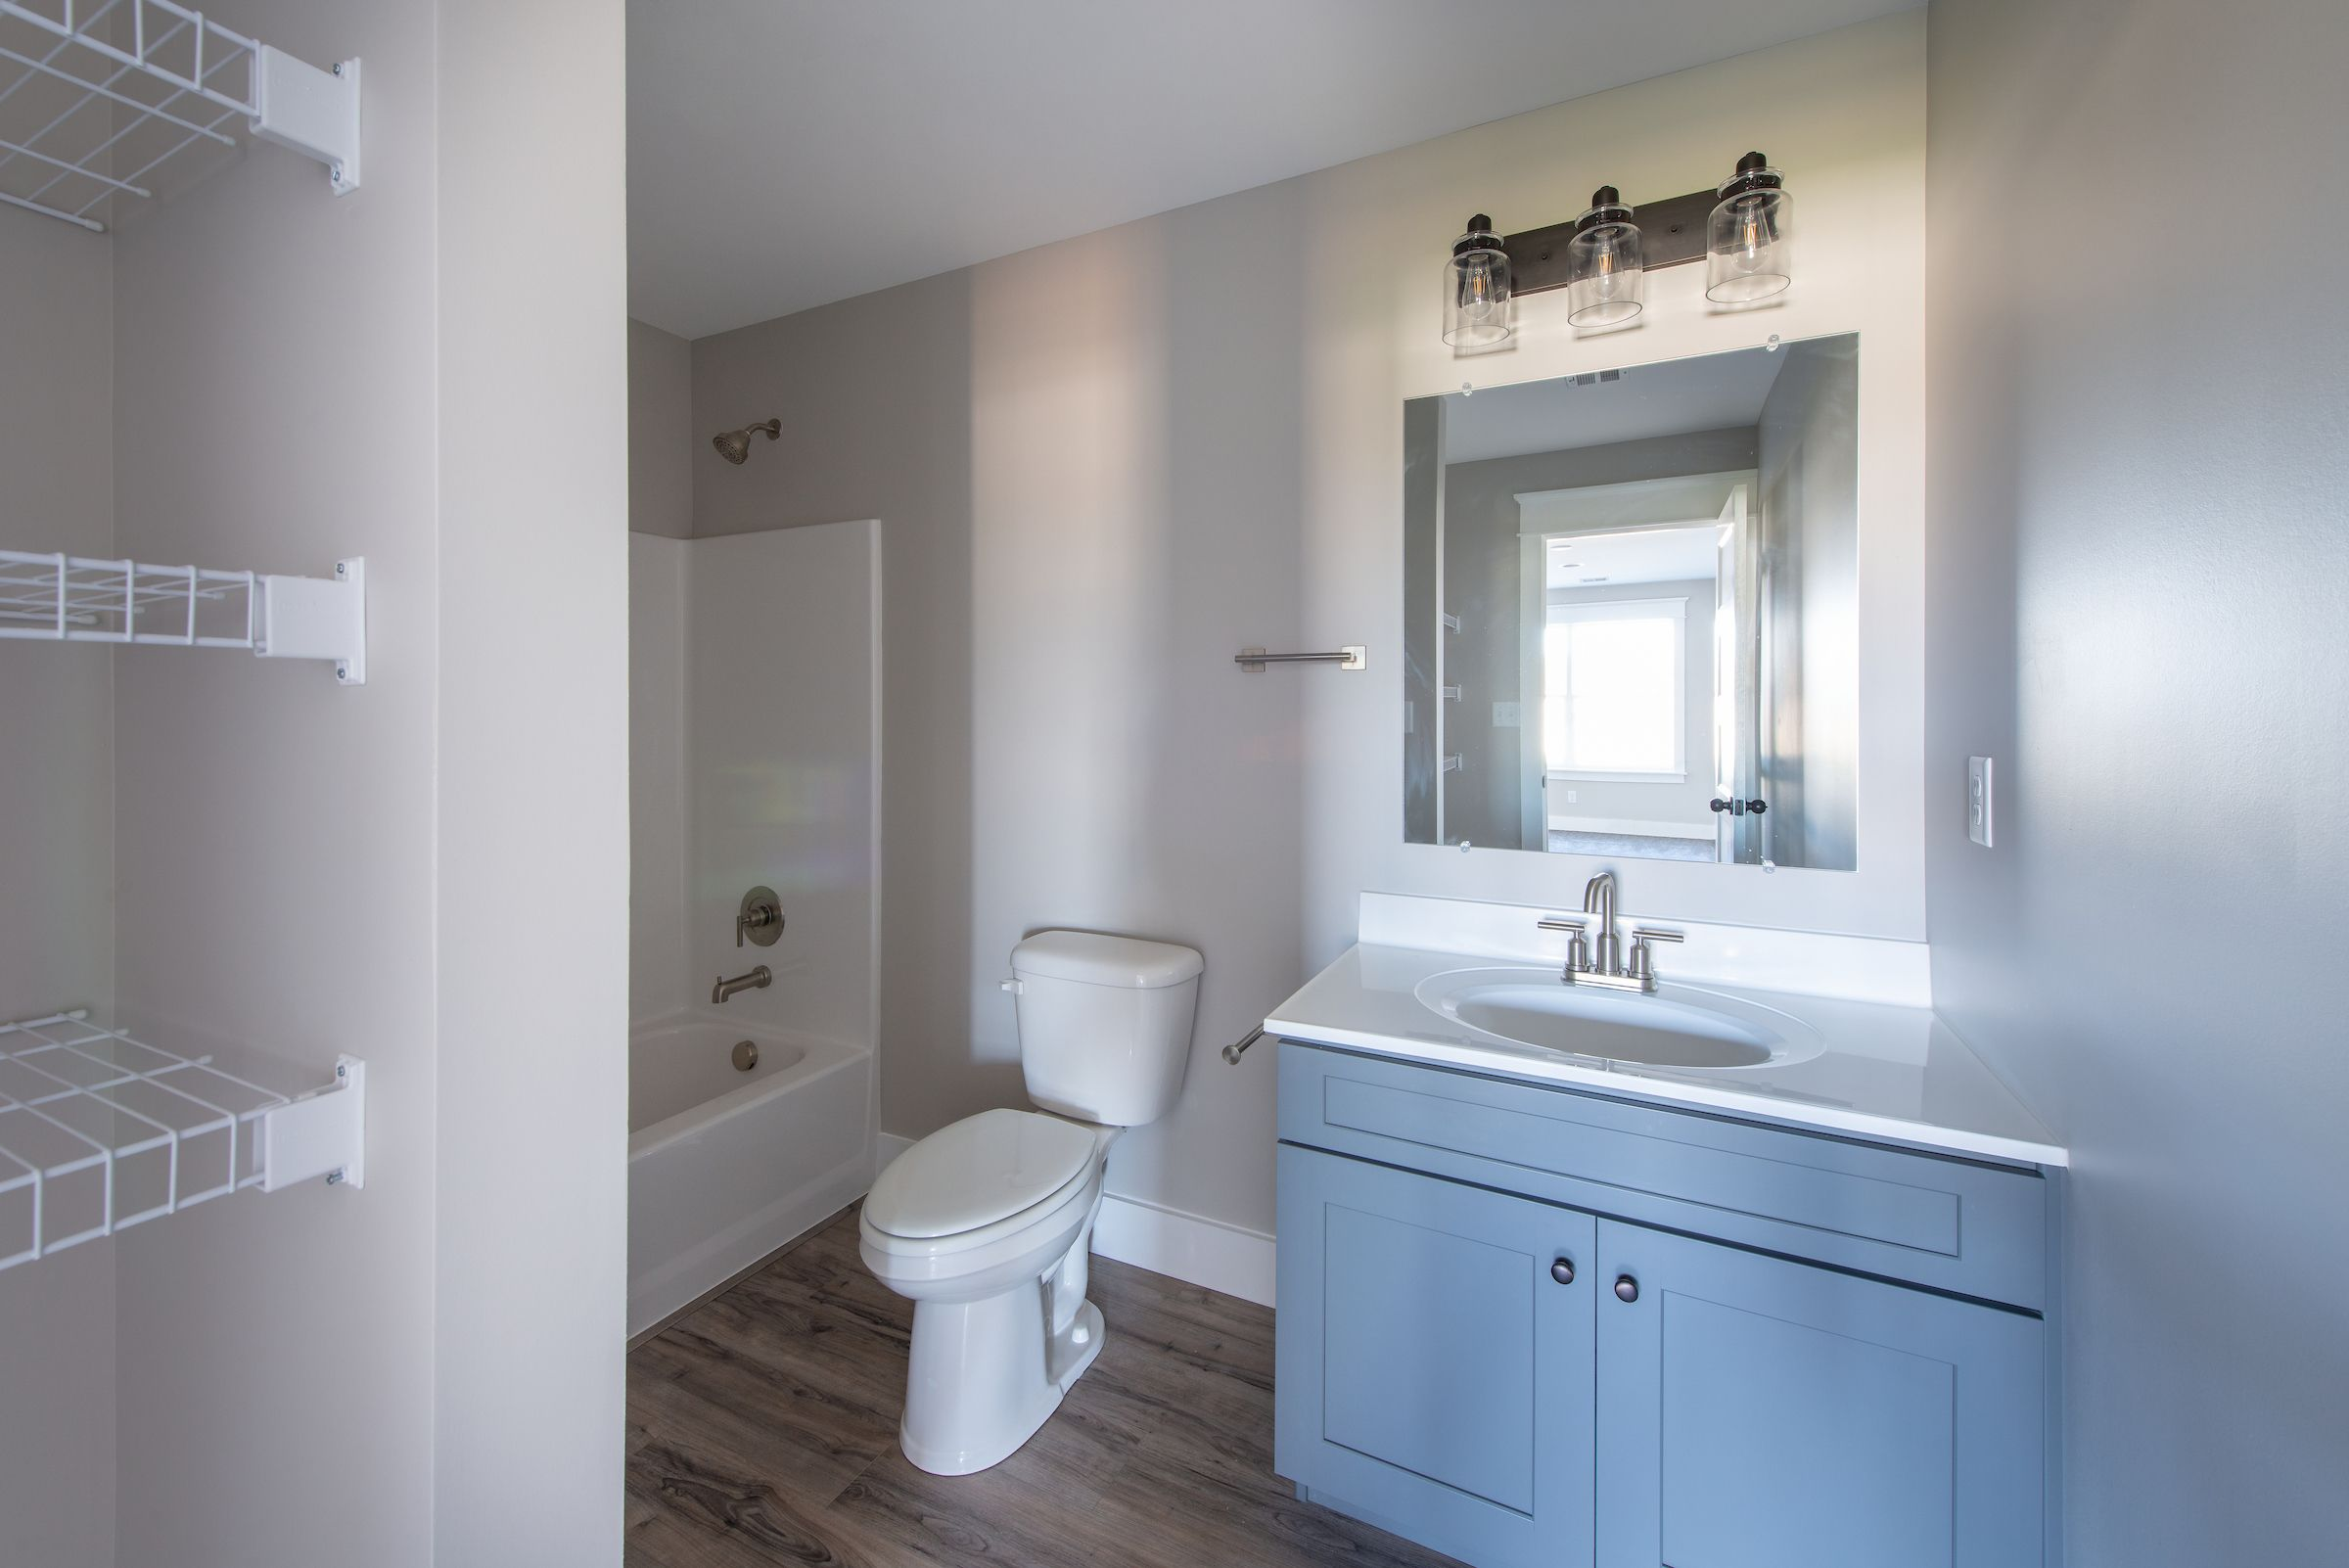 Bathroom featured in the Sycamore Heritage By Keystone Custom Homes in York, PA